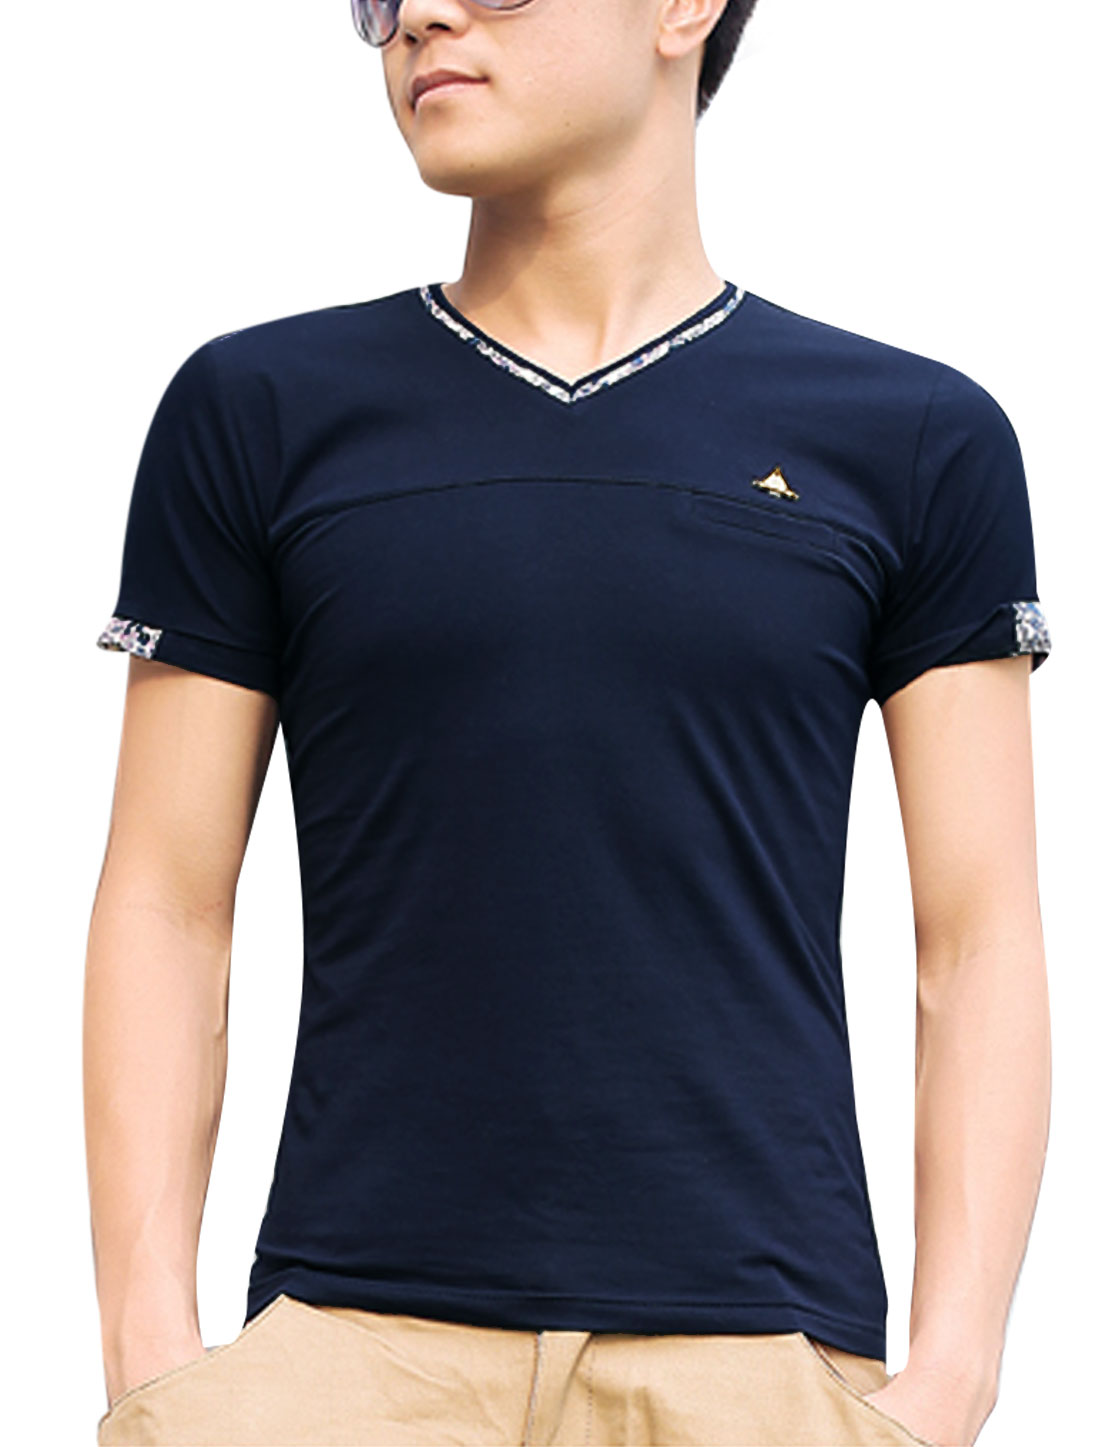 Men V Neck Short Sleeve Mock Welt Pocket Slim Fit T-Shirt Navy Blue M